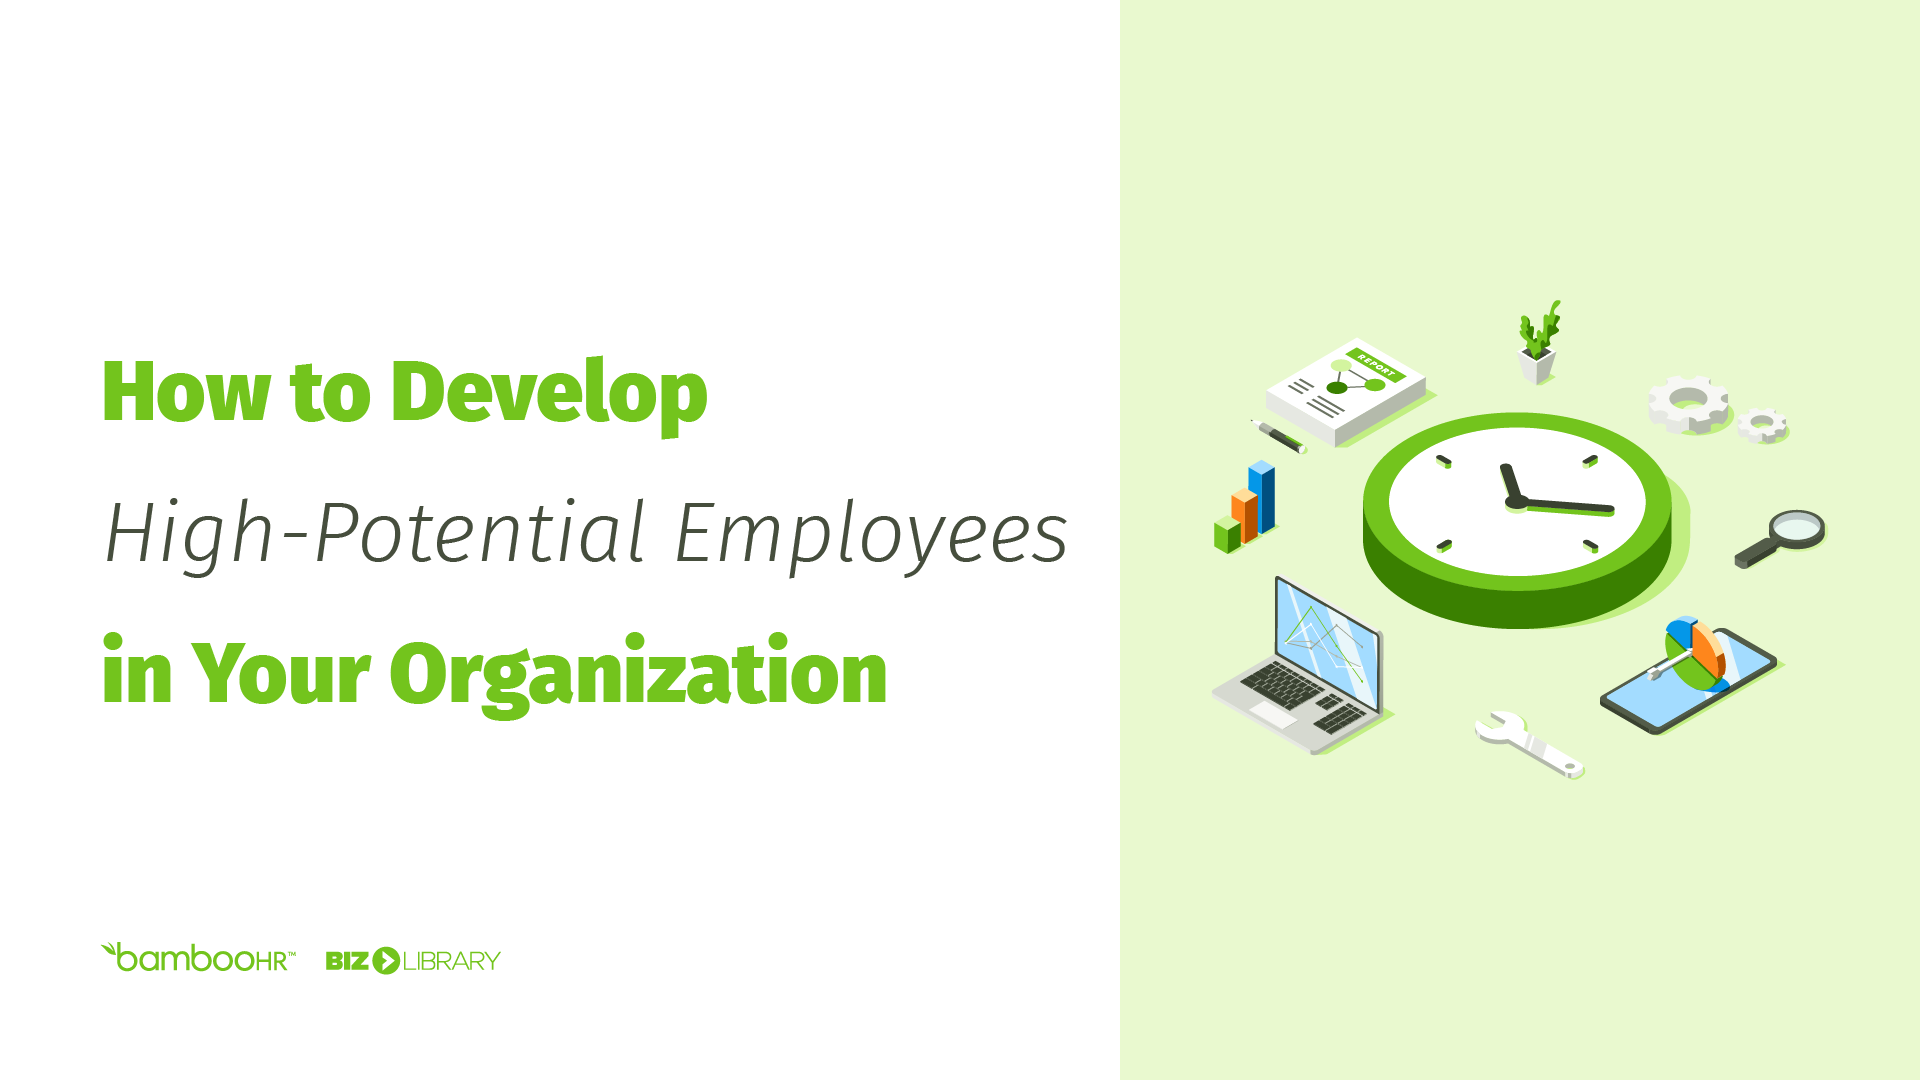 How to Develop High-Potential Employees in Your Organization